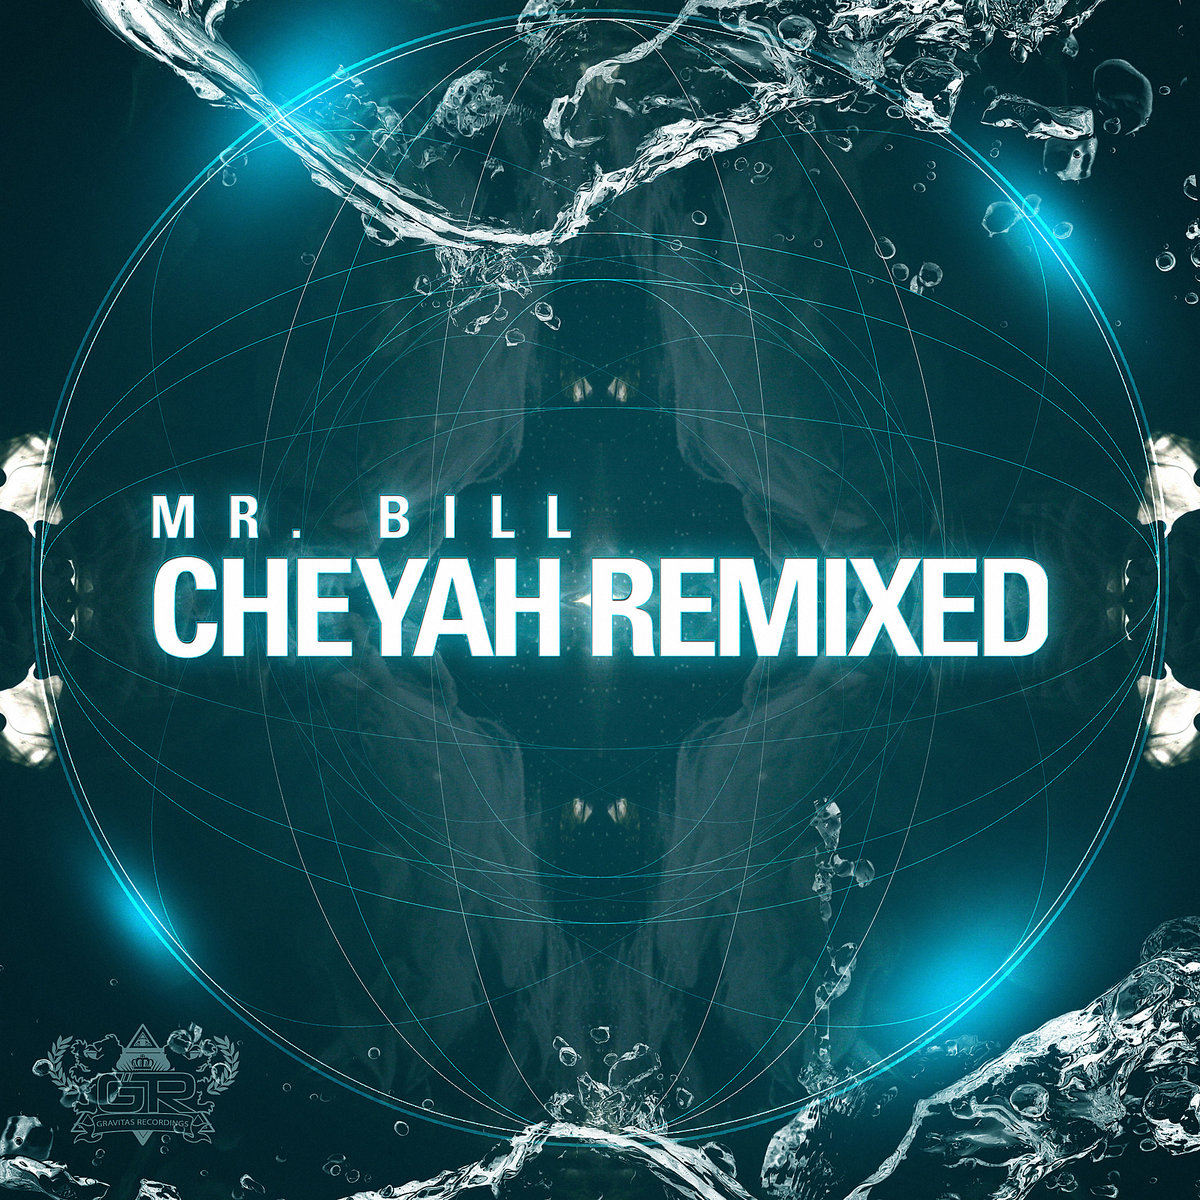 Mr. Bill - Cheyah (Osiris & Sooko Remix) @ 'Cheyah Remixed' album (australia, idm)